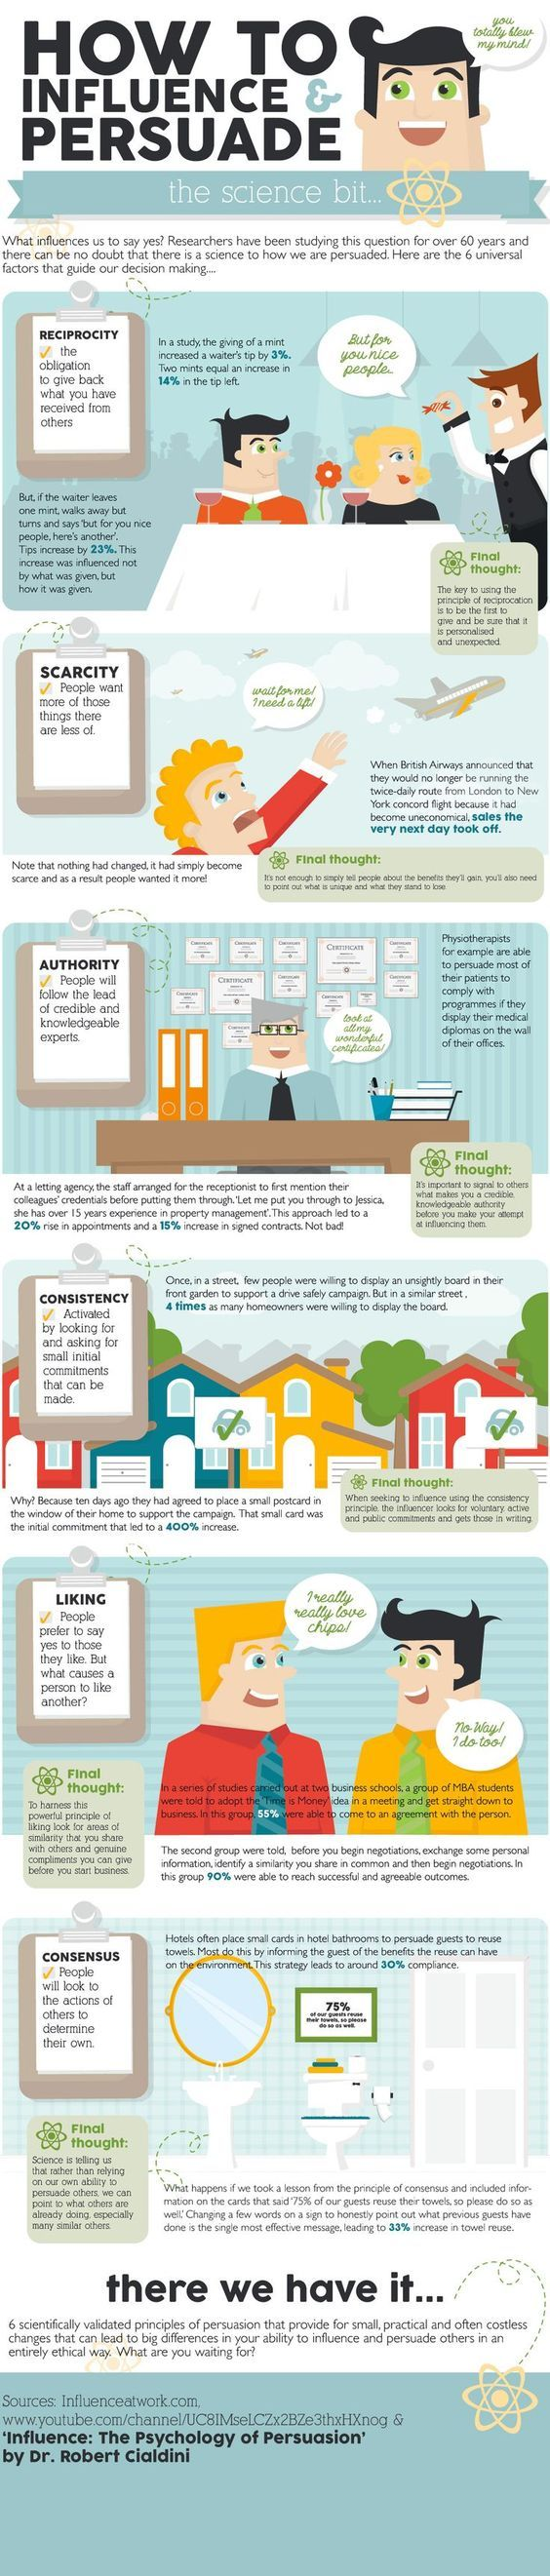 How To Persuade & Influence [Infographic] - The 6 Elements of Persuasion